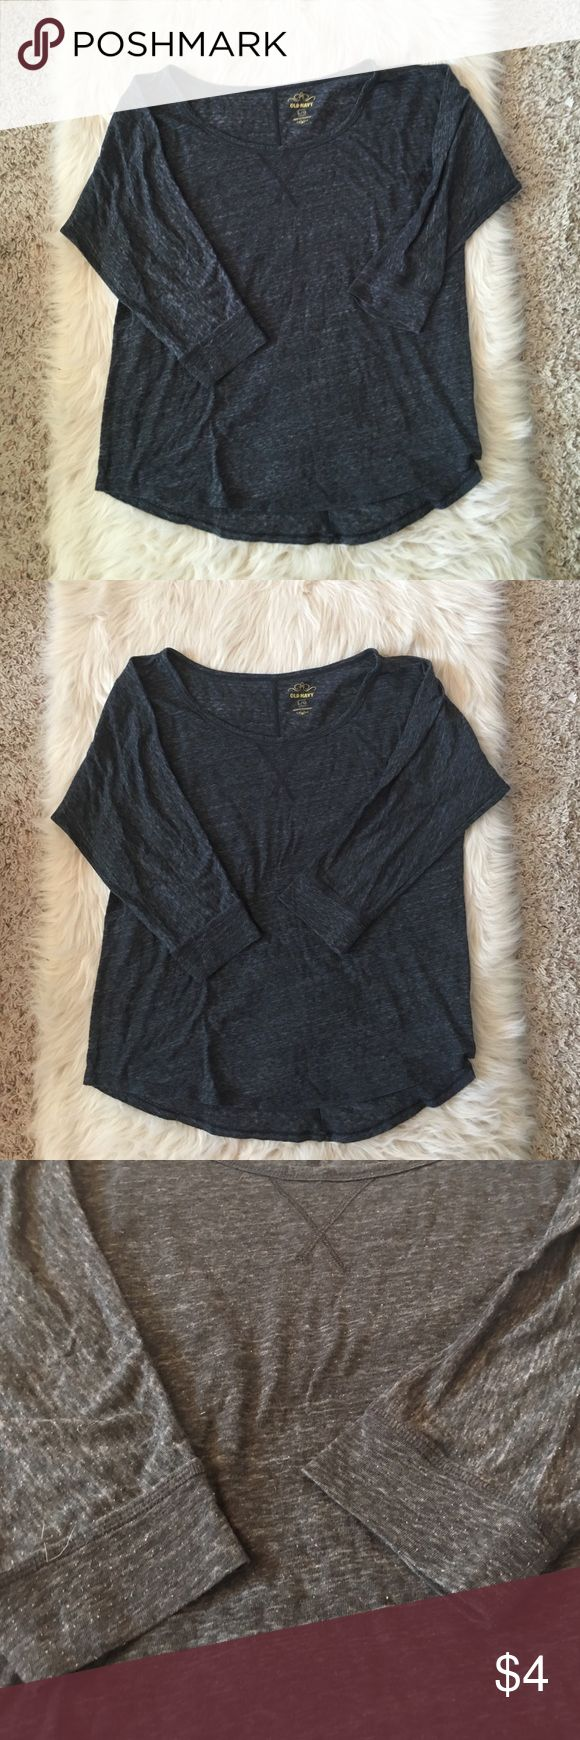 3/4 sleeve shirt Good pre-loved condition. Lightweight. 3/4 sleeves. Nice color to mix with bright pants. Old Navy Tops Tees - Long Sleeve